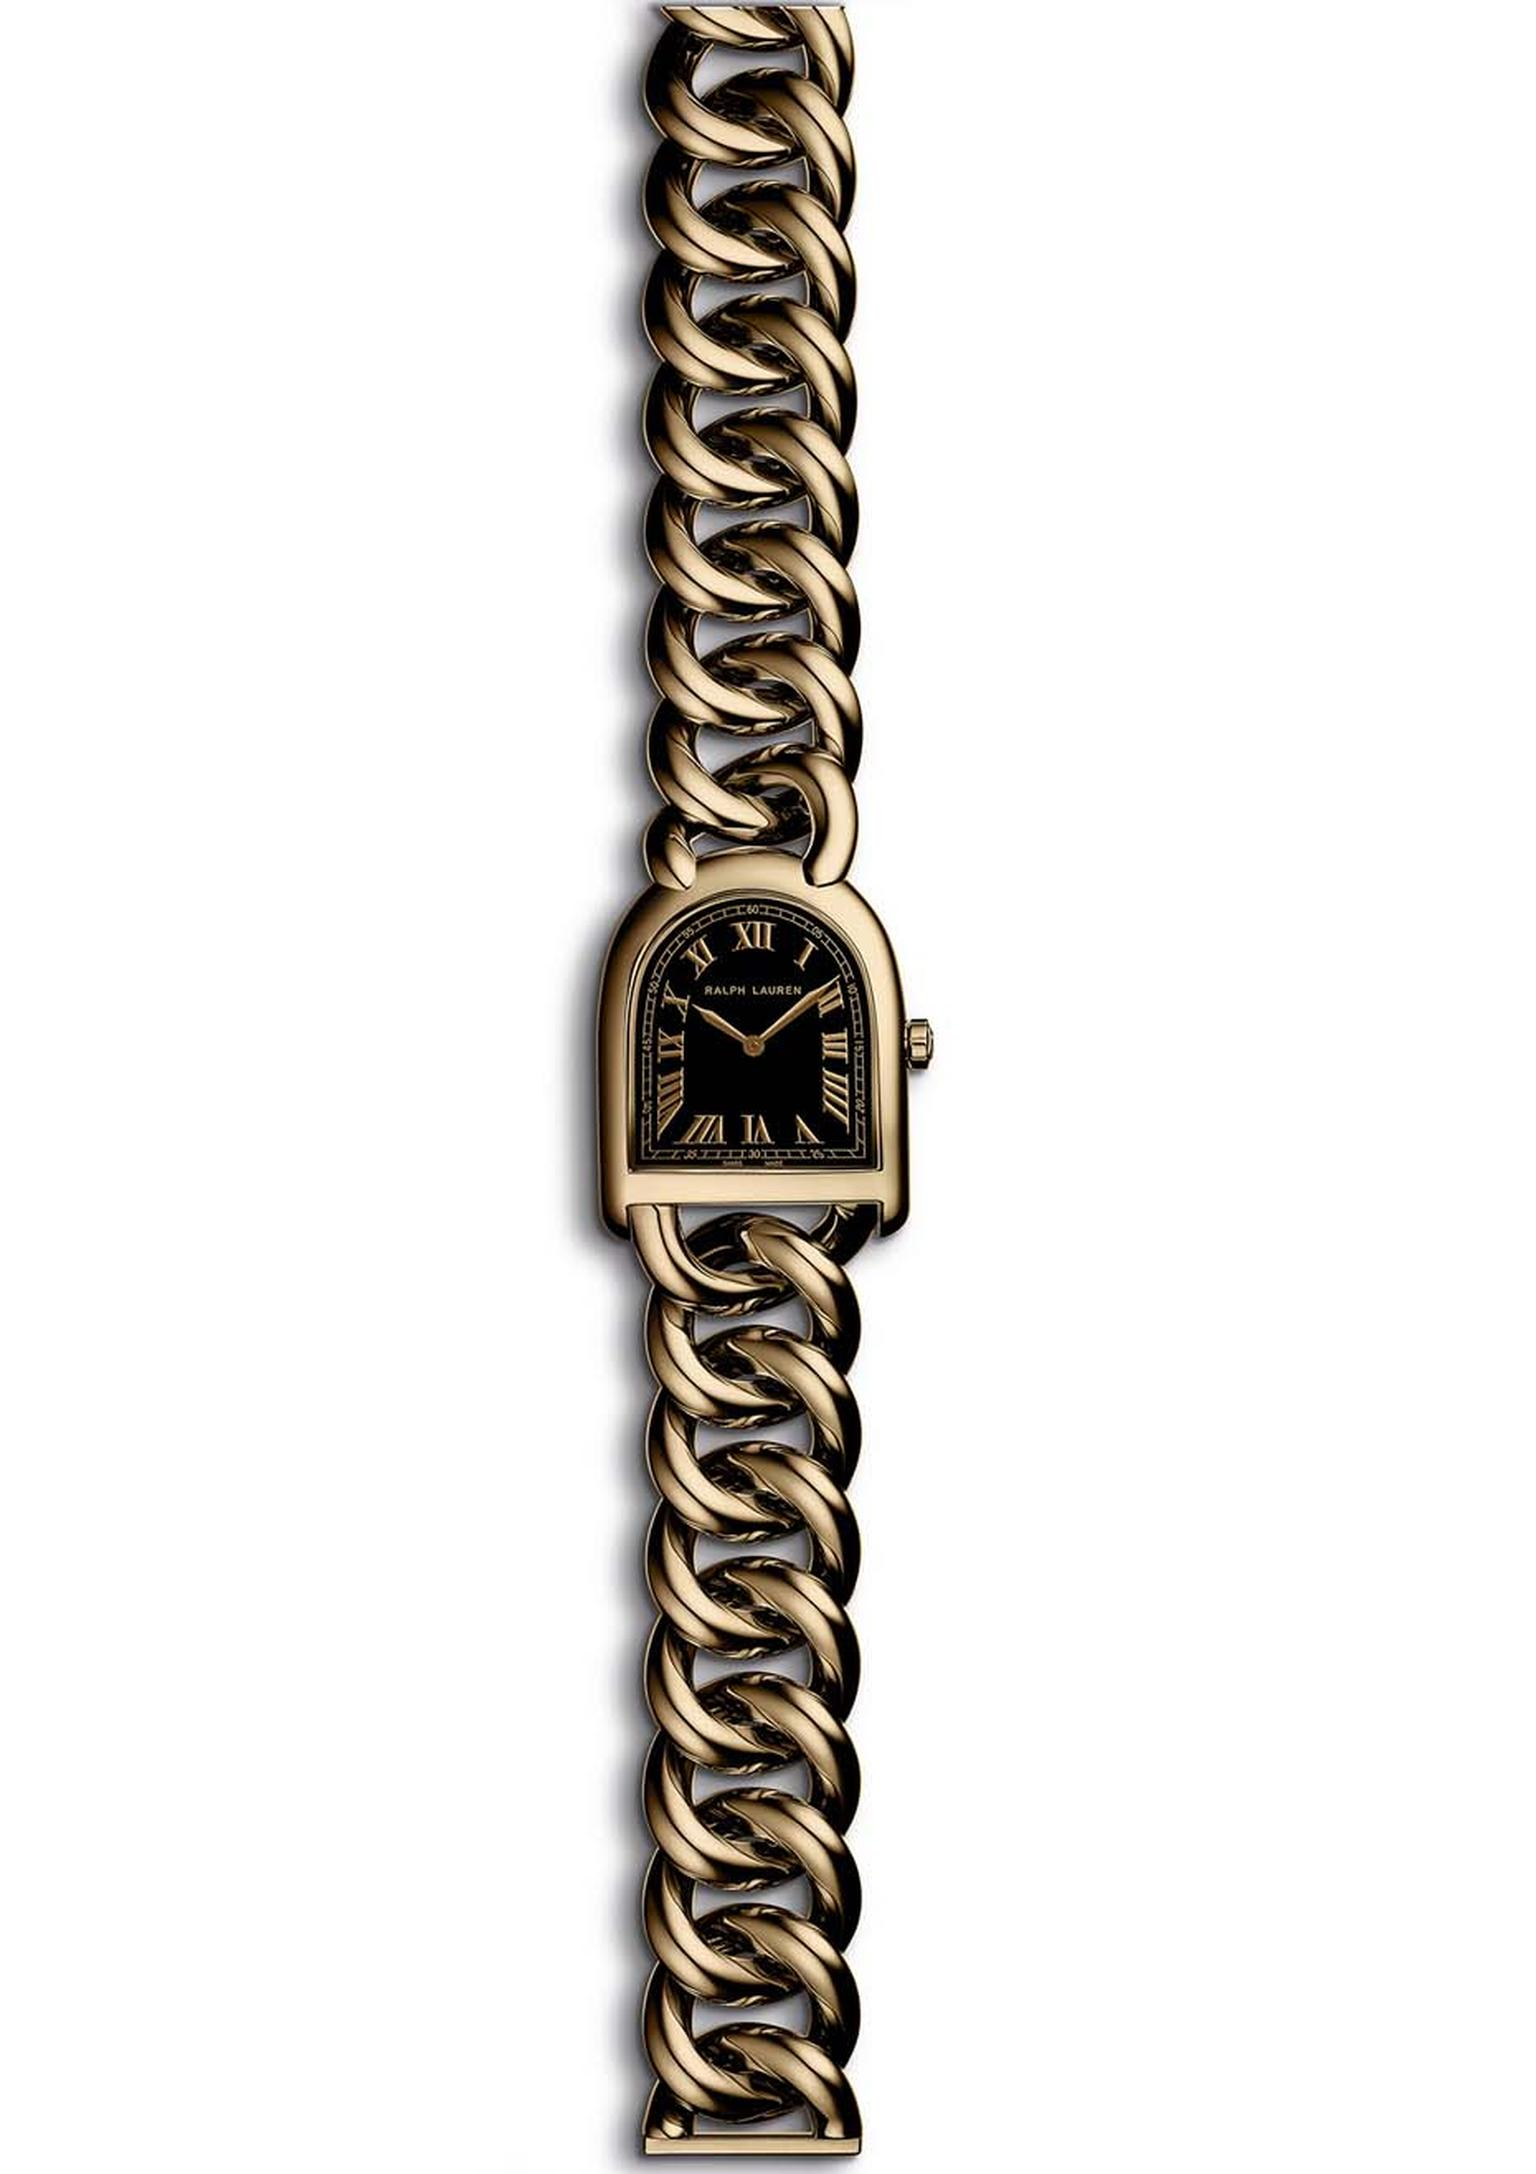 Ralph Lauren Stirrup Petite-Link watch in rose gold with a black lacquered dial and jewellery chain bracelet.